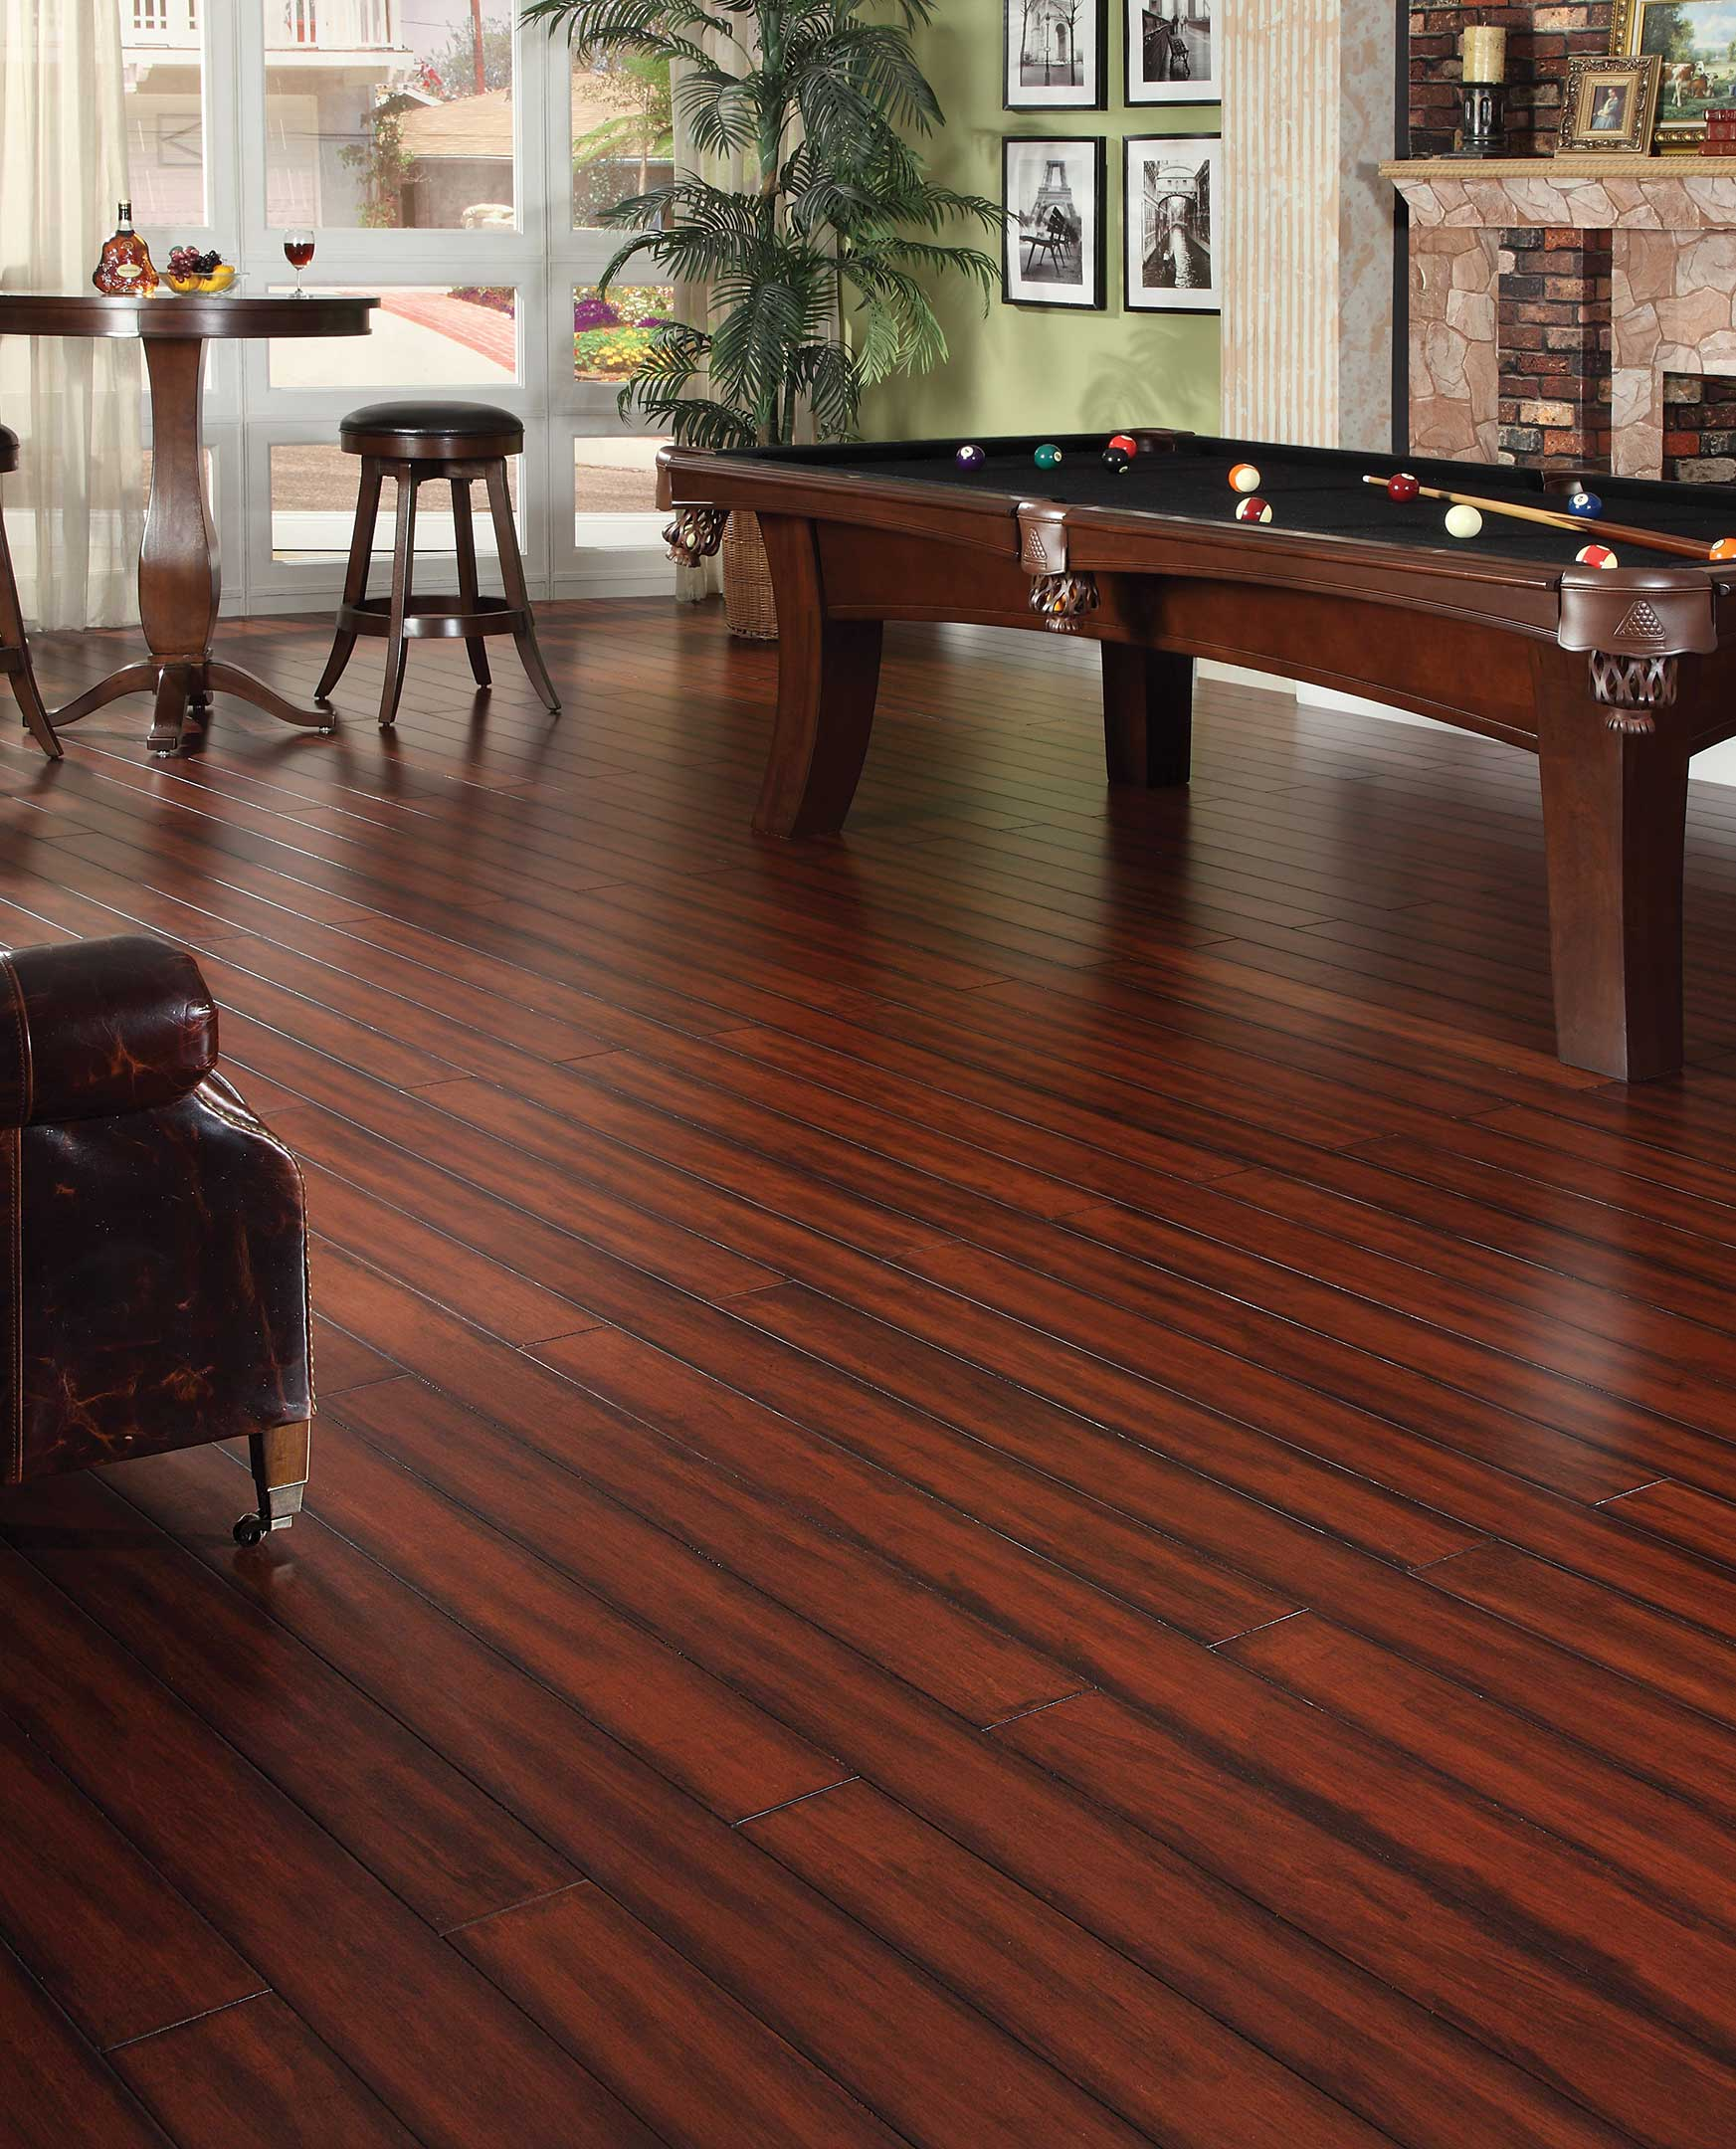 Flooring Hardwood Bamboo Tile Linoleum | Atlanta Home Improvement